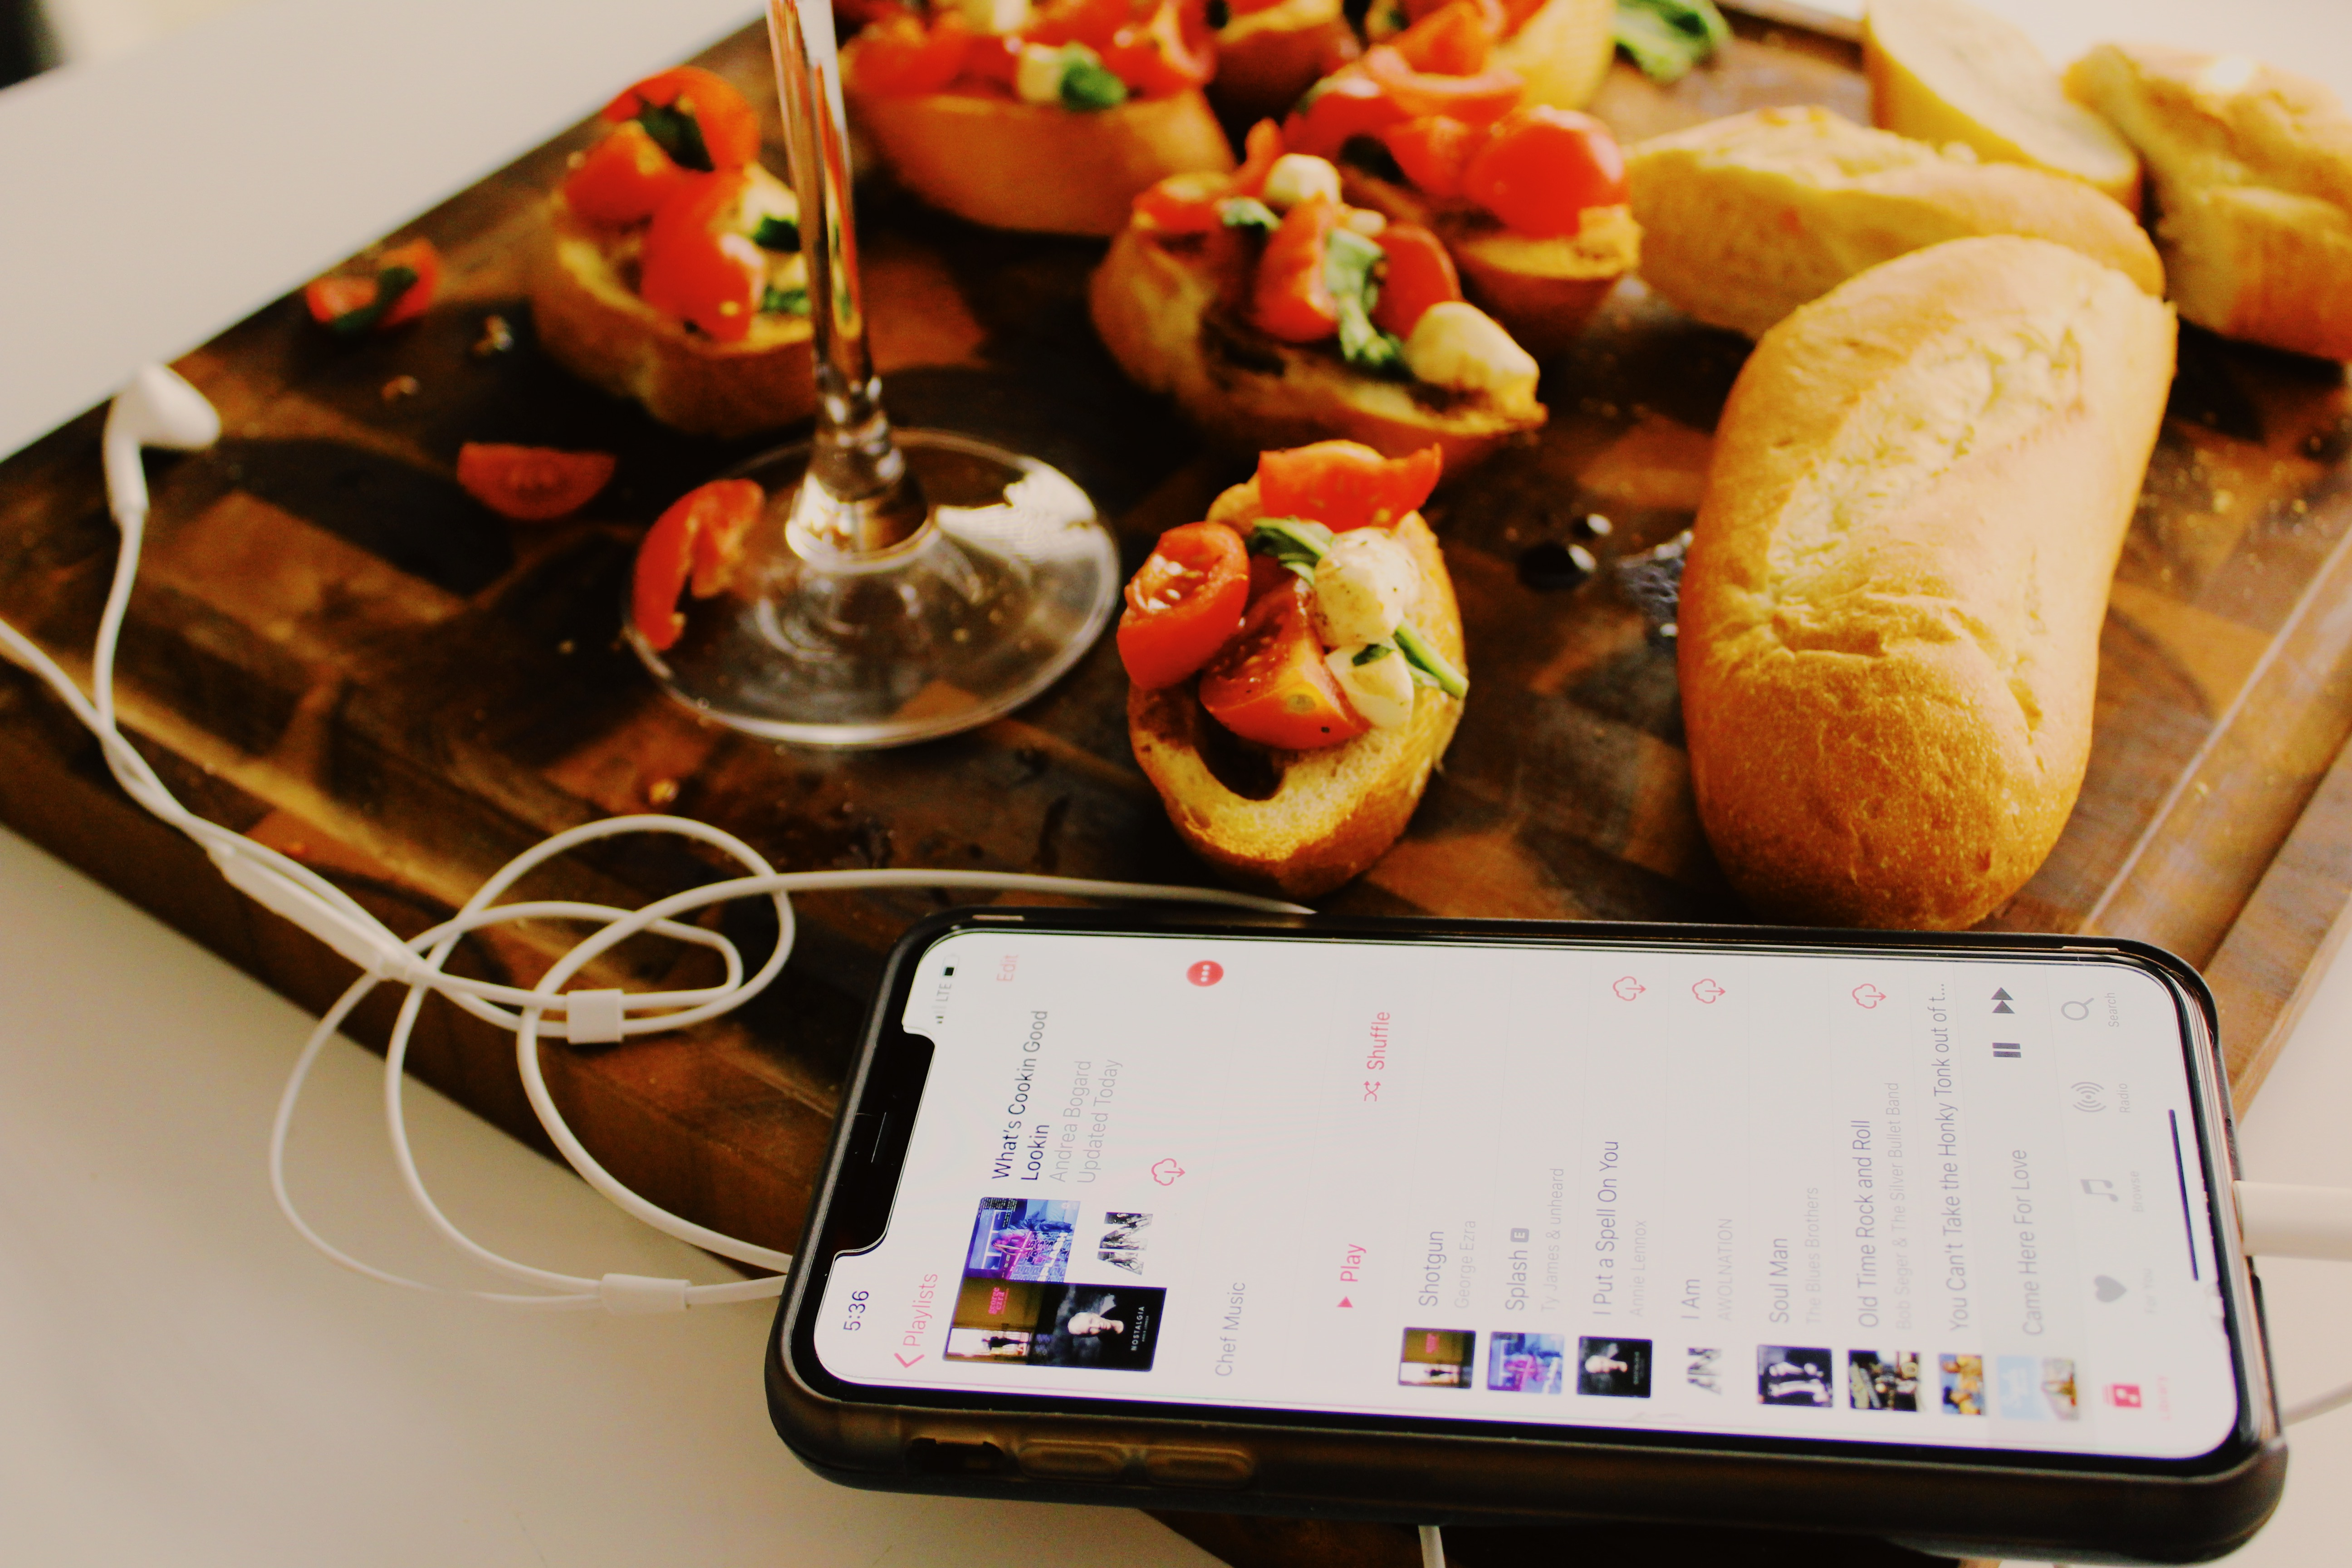 HELLO, IS IT ME YOU'RE COOKING FOR? : PLAYLIST